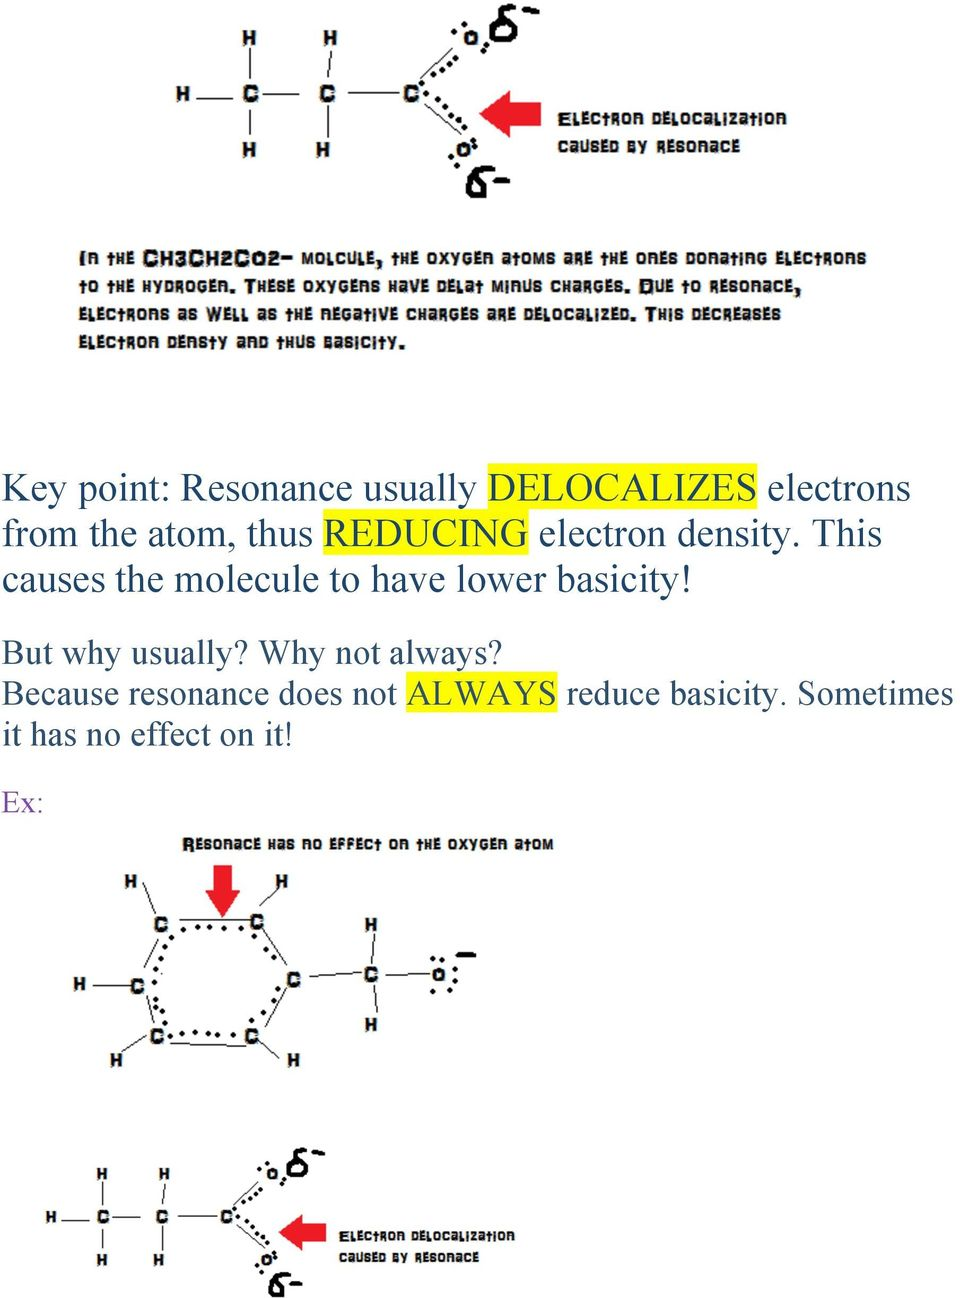 This causes the molecule to have lower basicity! But why usually?